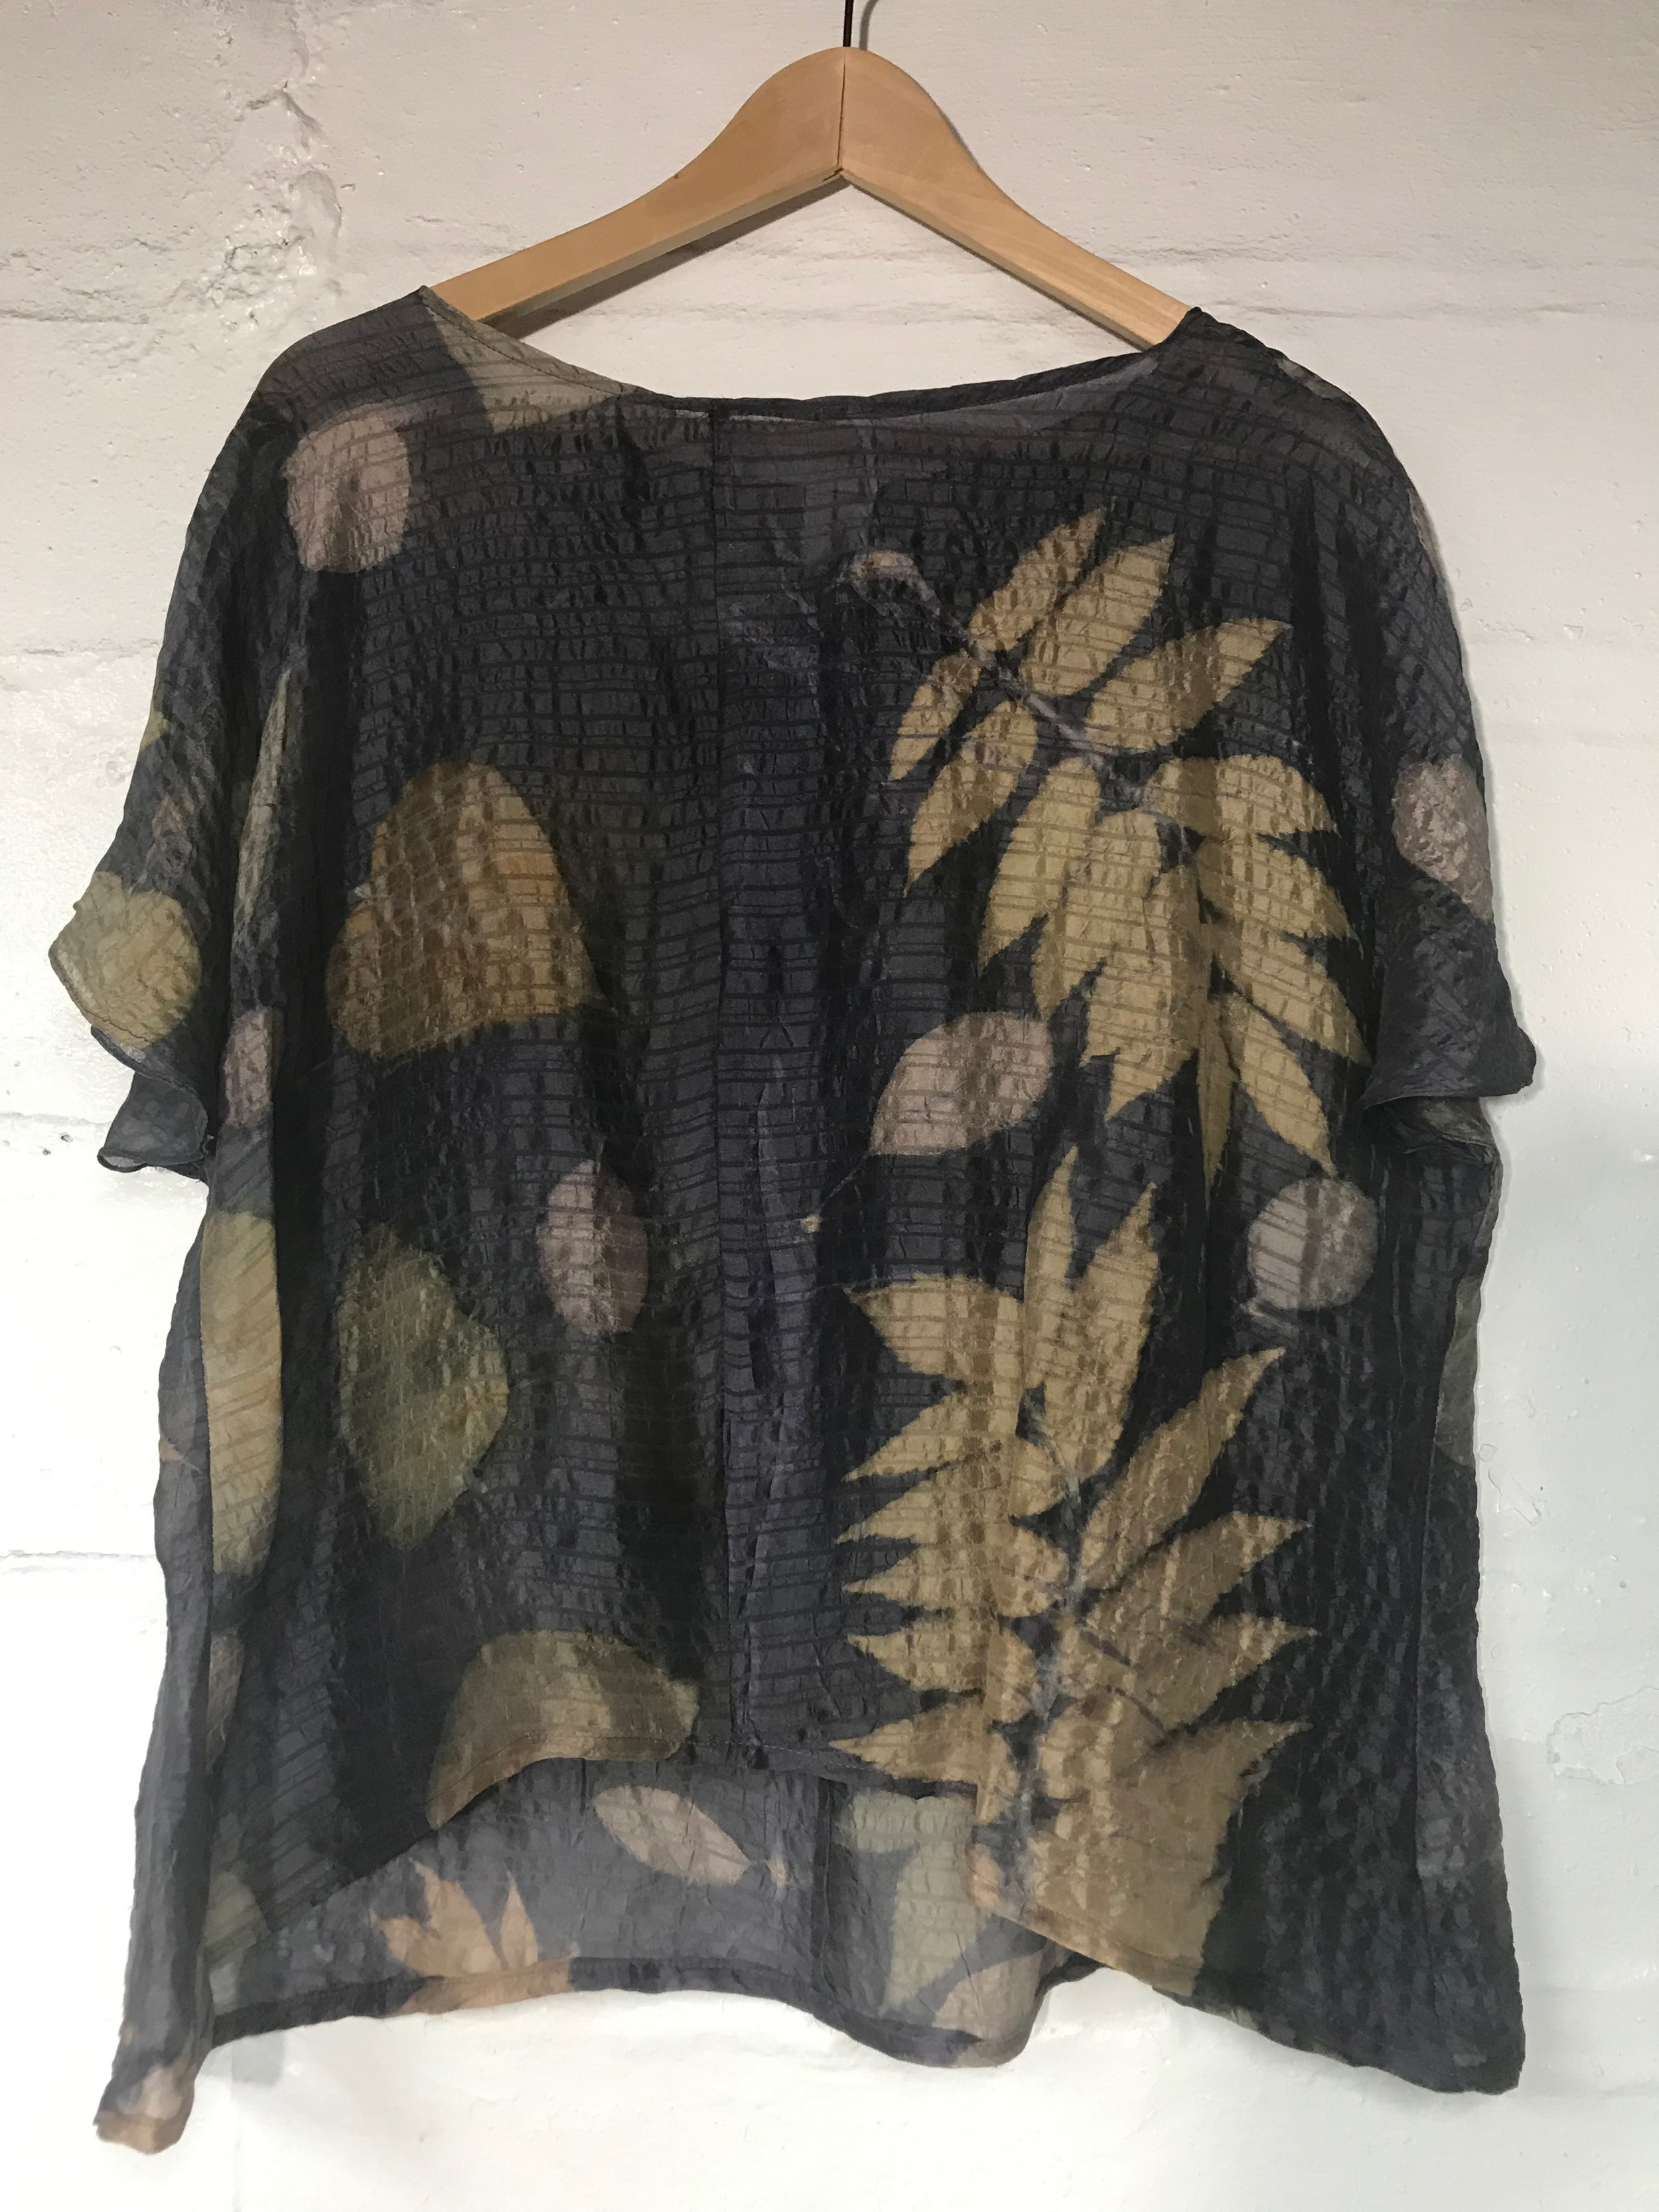 Silk dyed in logwood and printed with smokebush and sumac leaves.